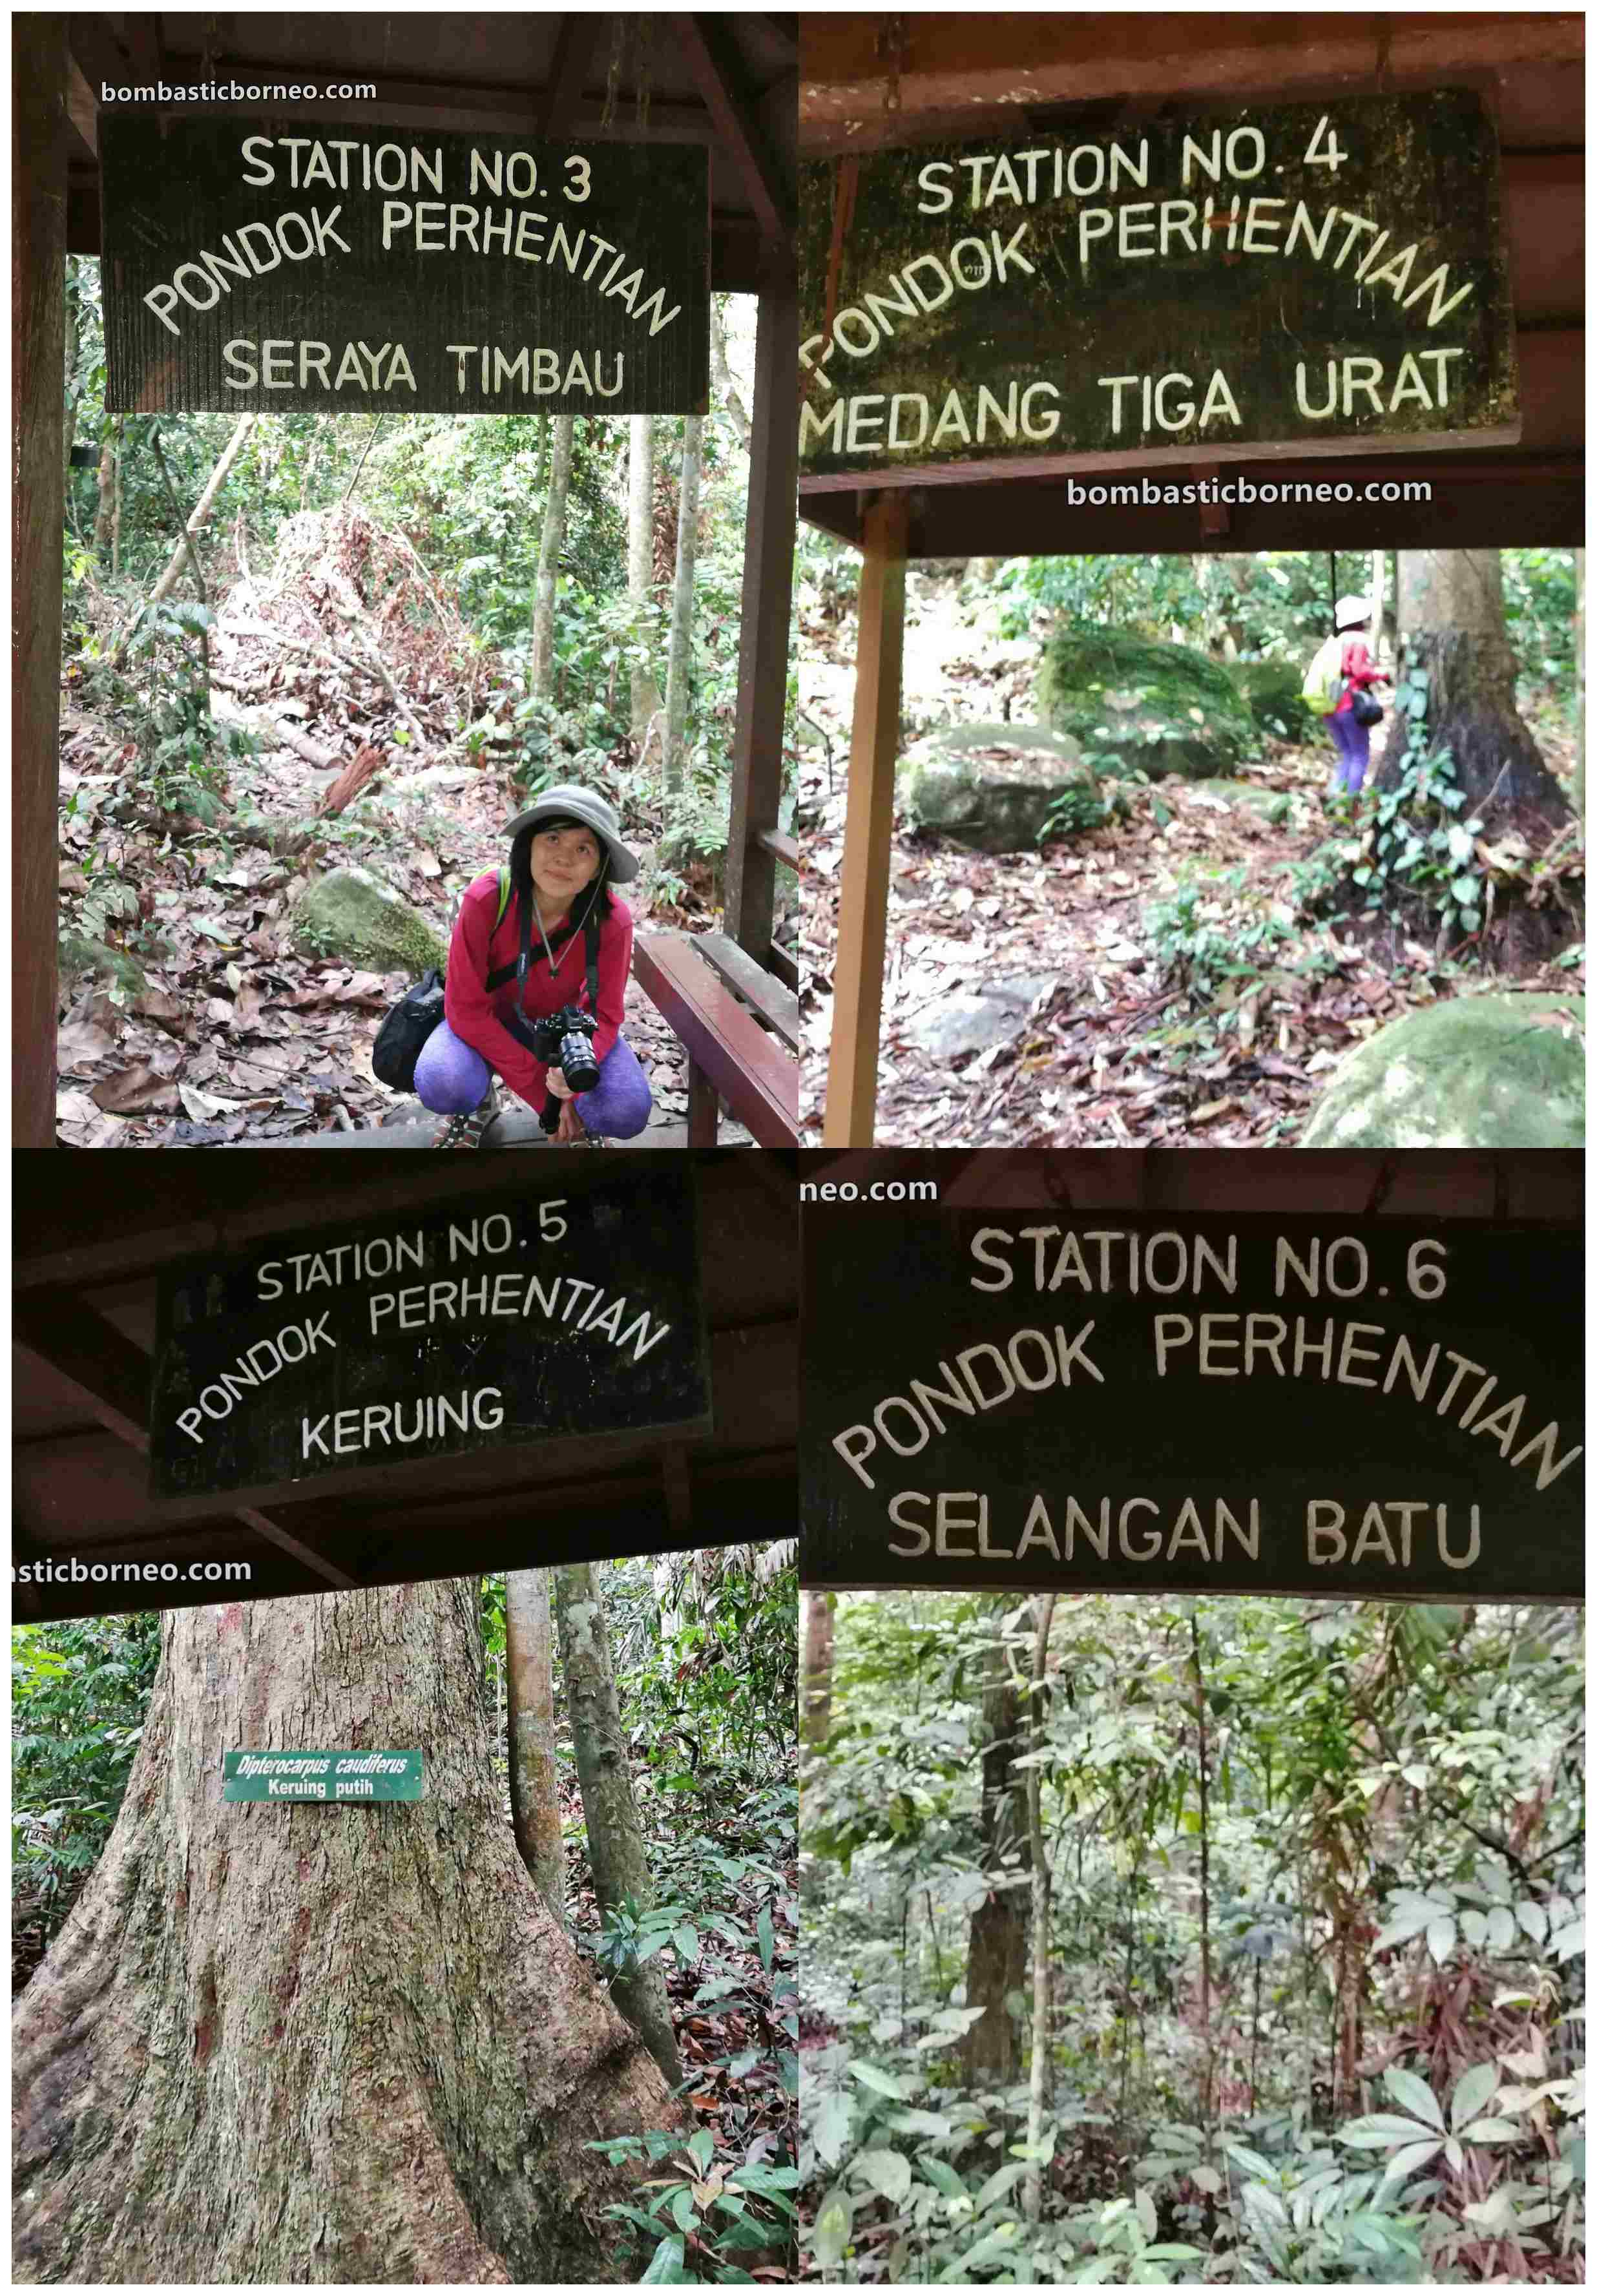 adventure, nature, outdoor, primary jungle, trekking, conservation, Hutan simpan, Titian Silara, Malaysia, tourist attraction, travel guide, Trans Borneo, 婆罗洲游踪,马来西亚沙巴, 斗湖森林保护区